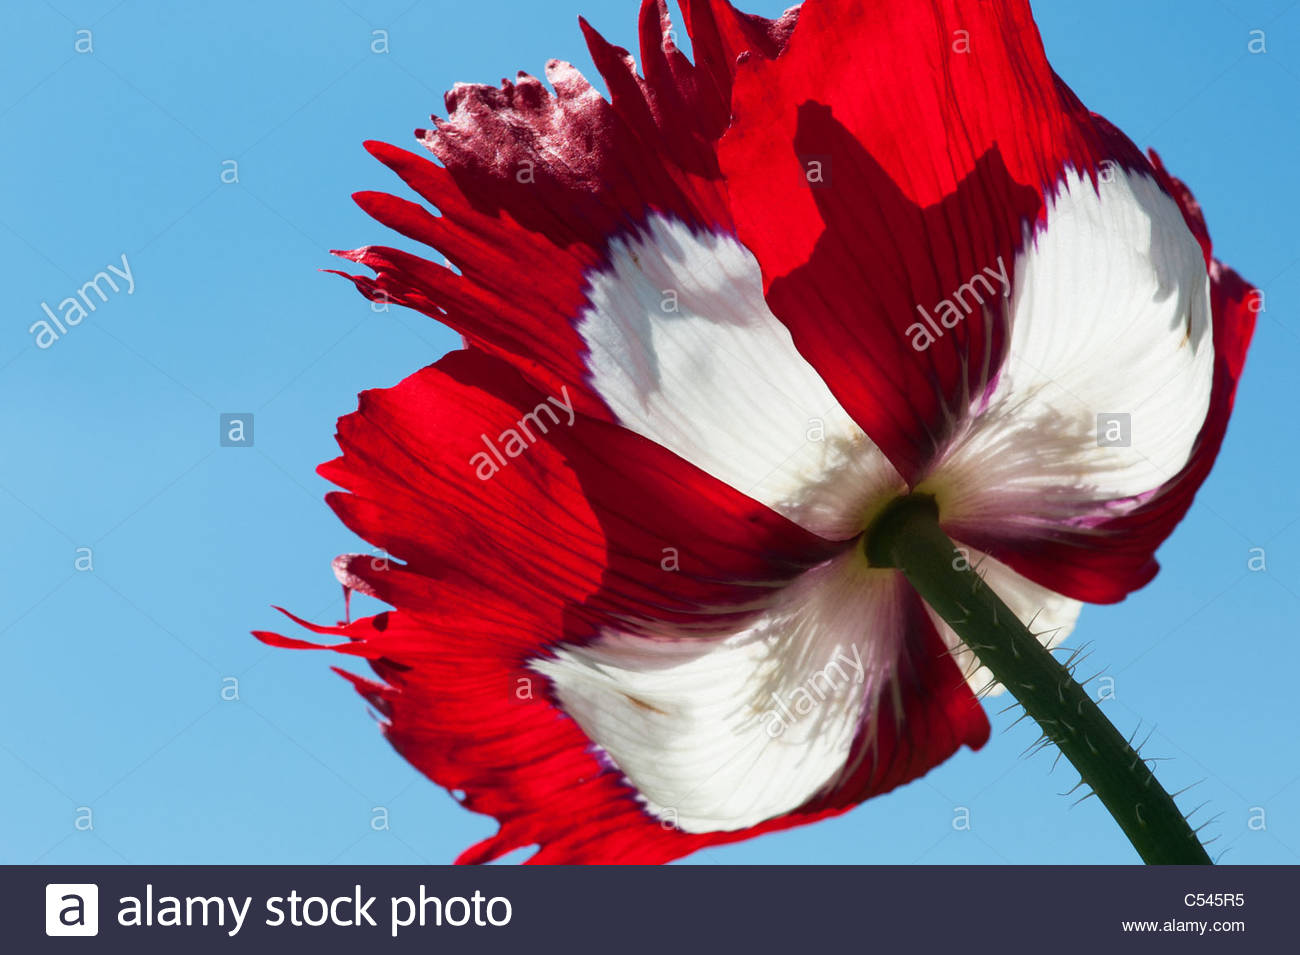 Red and white poppies petals stock photos red and white poppies papaver somniferum victoria cross fringed opium poppy flower stock image mightylinksfo